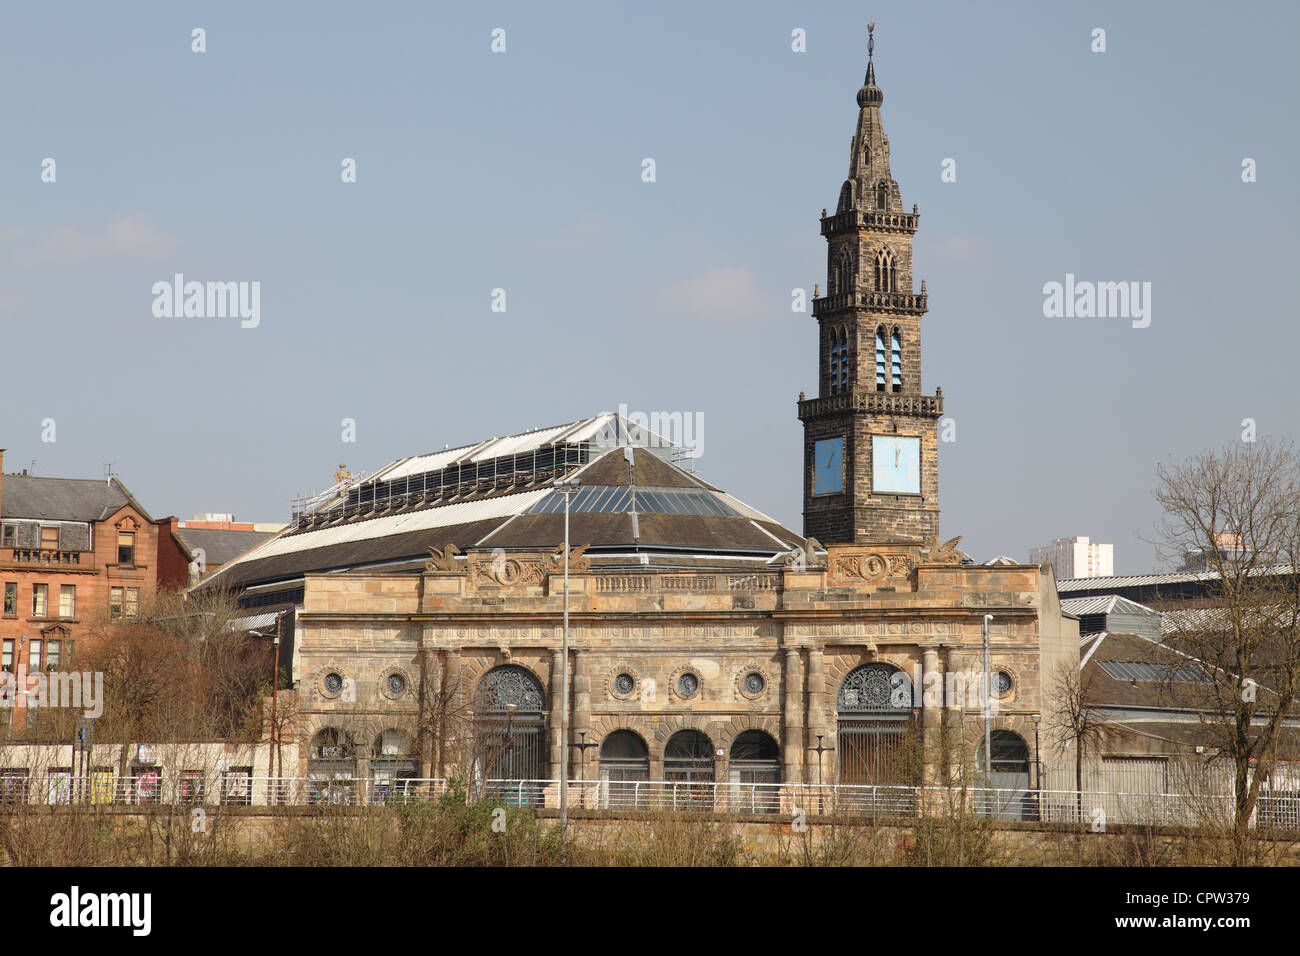 The Merchant Steeple and the old Fish Market in the Briggait area of Glasgow, Scotland, UK - Stock Image